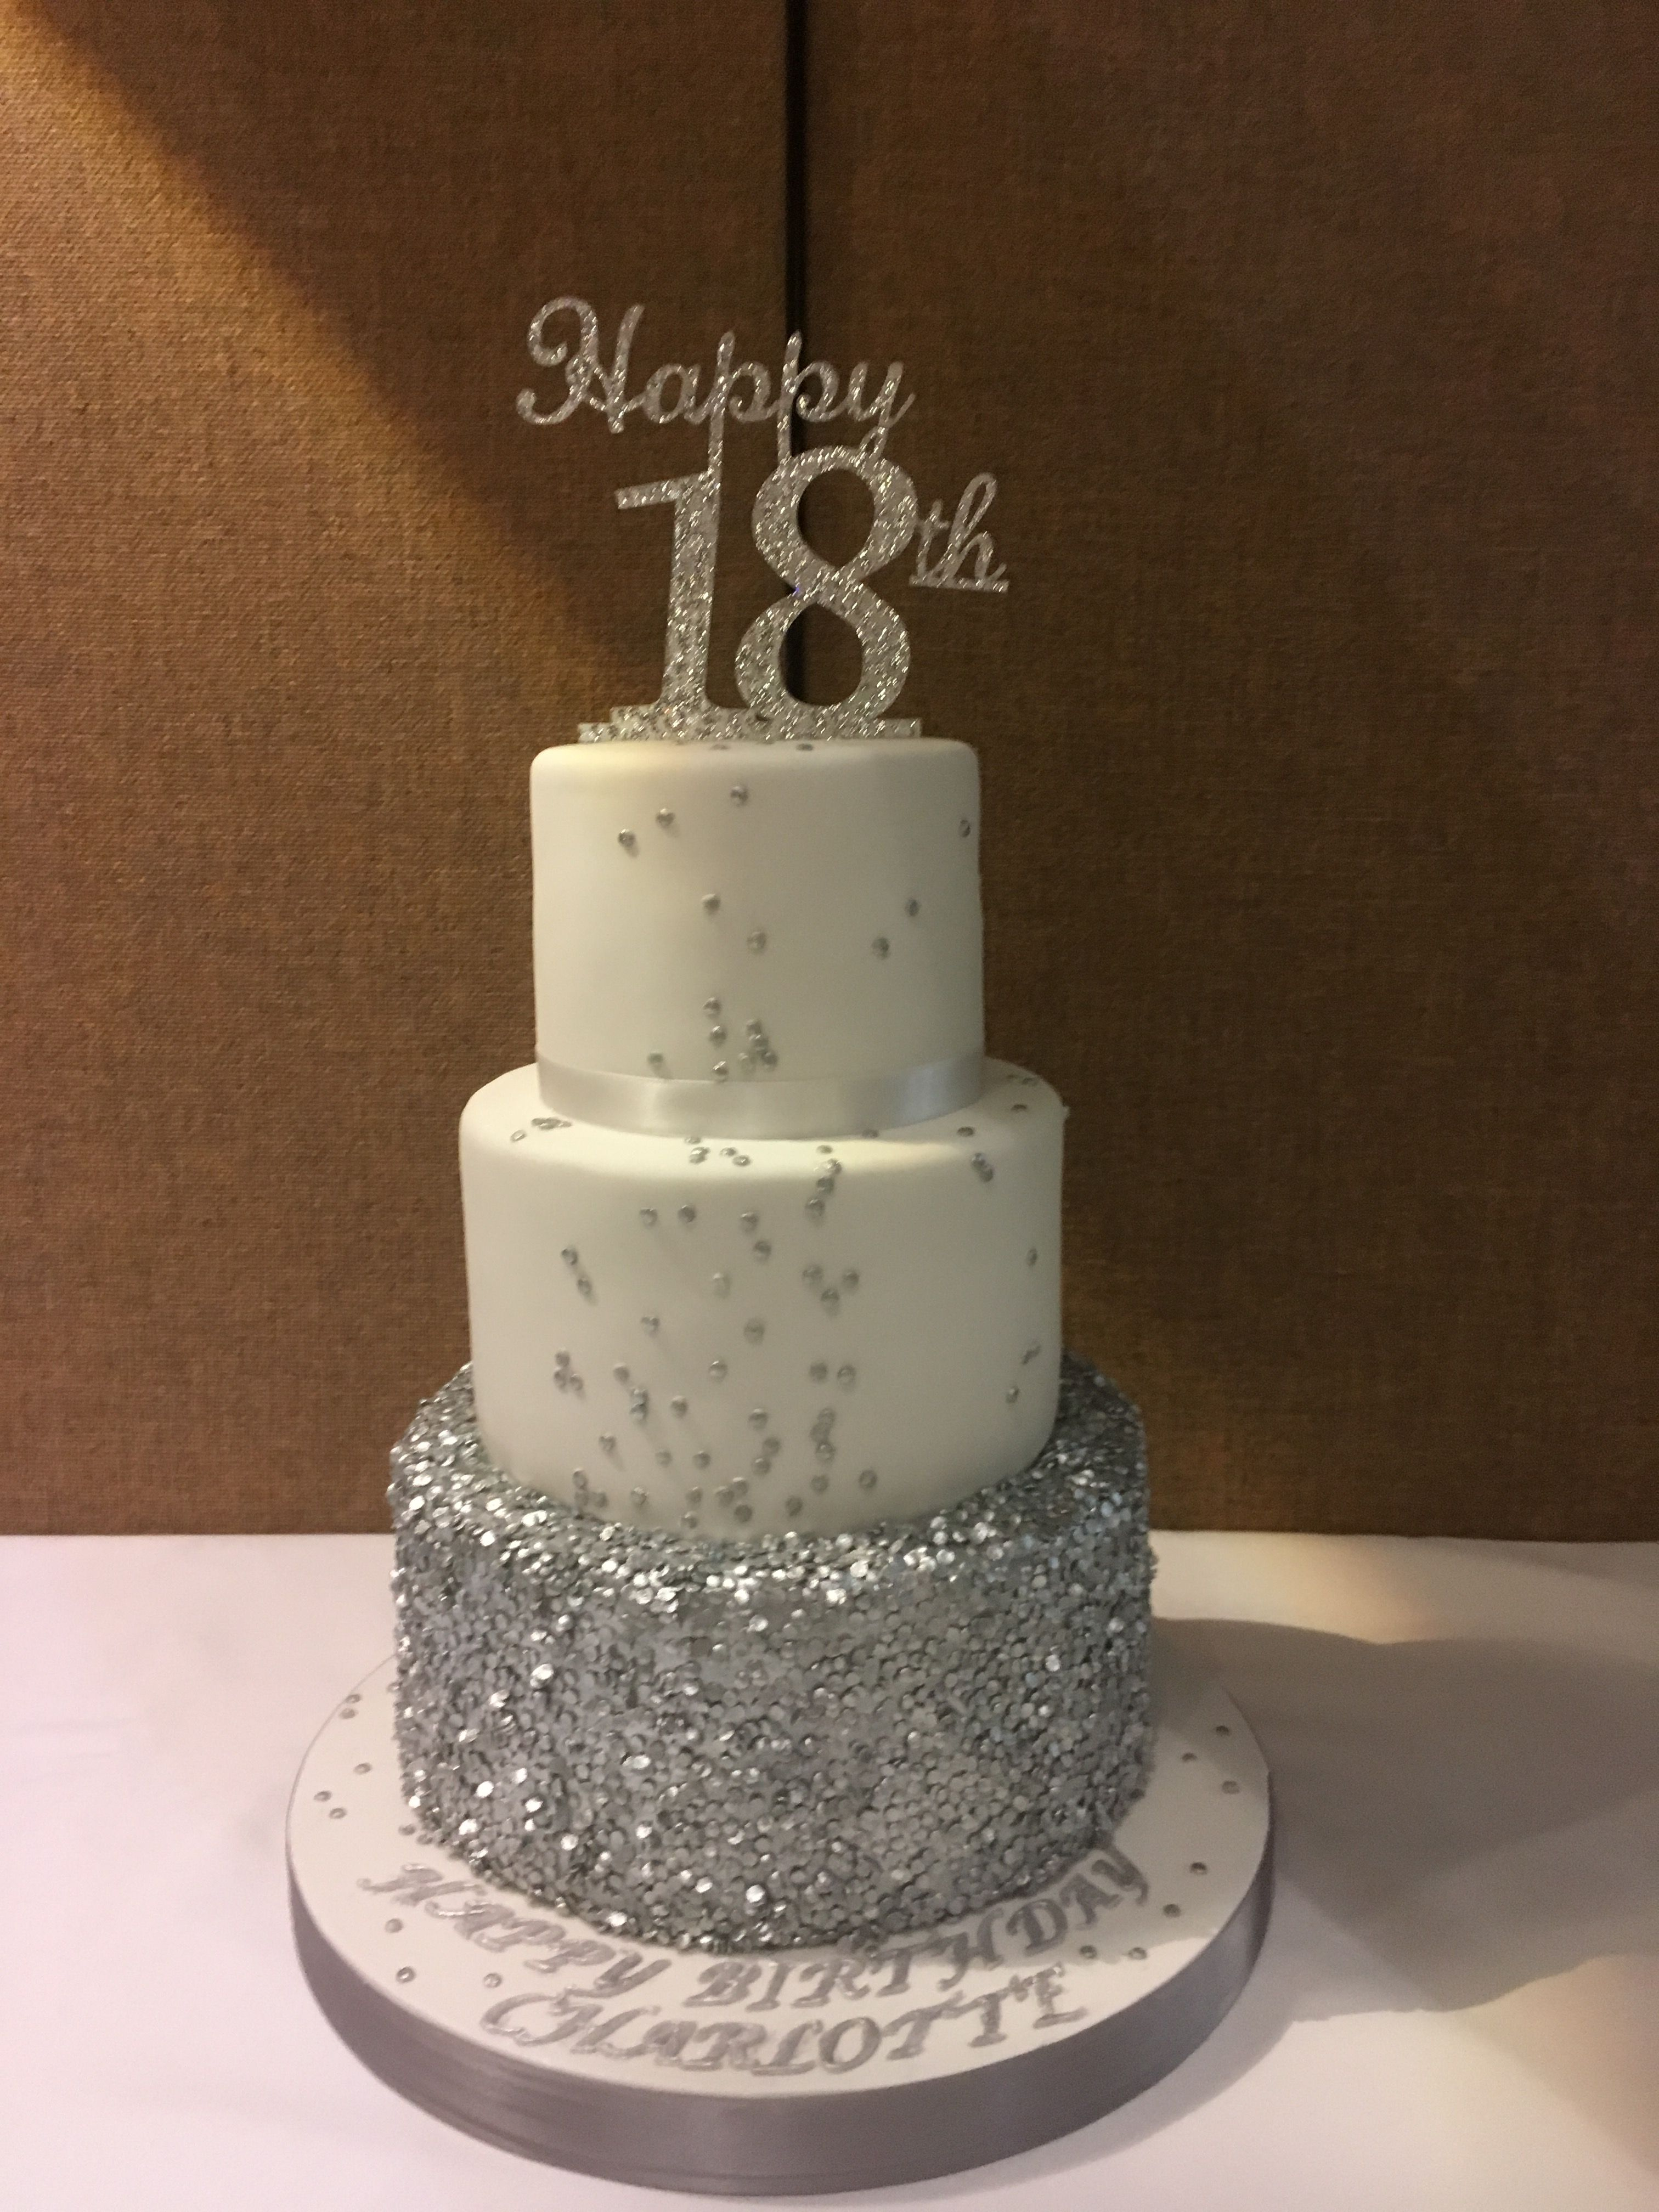 18th Birthday Cake With Silver Sequins And White Icing